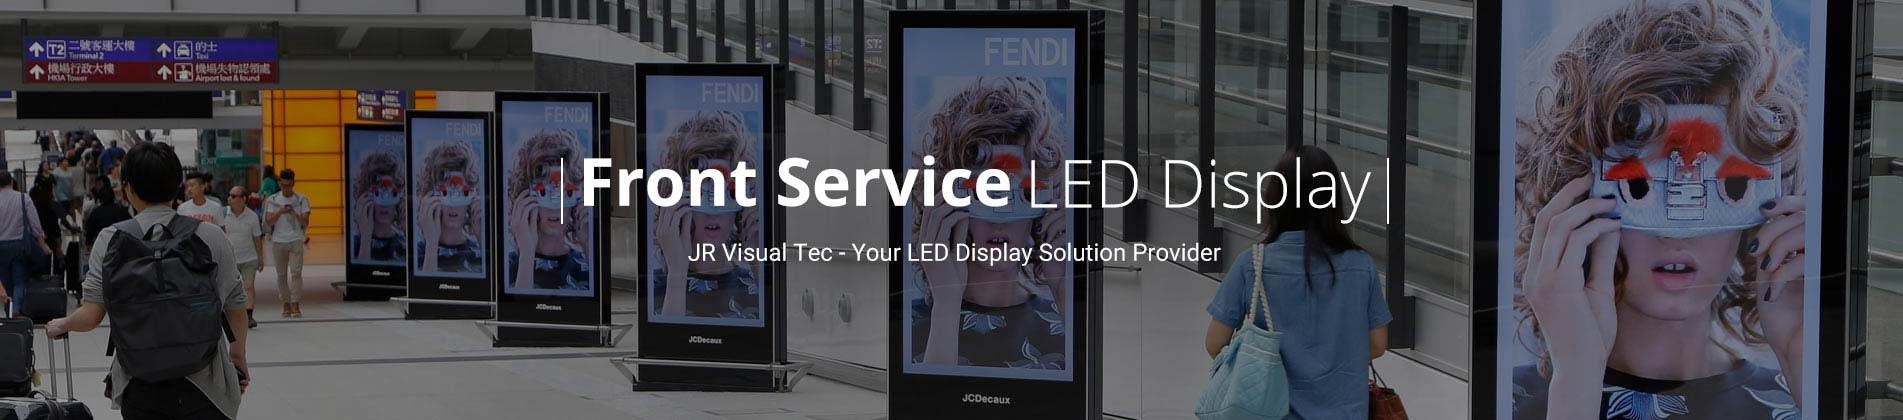 front service led display